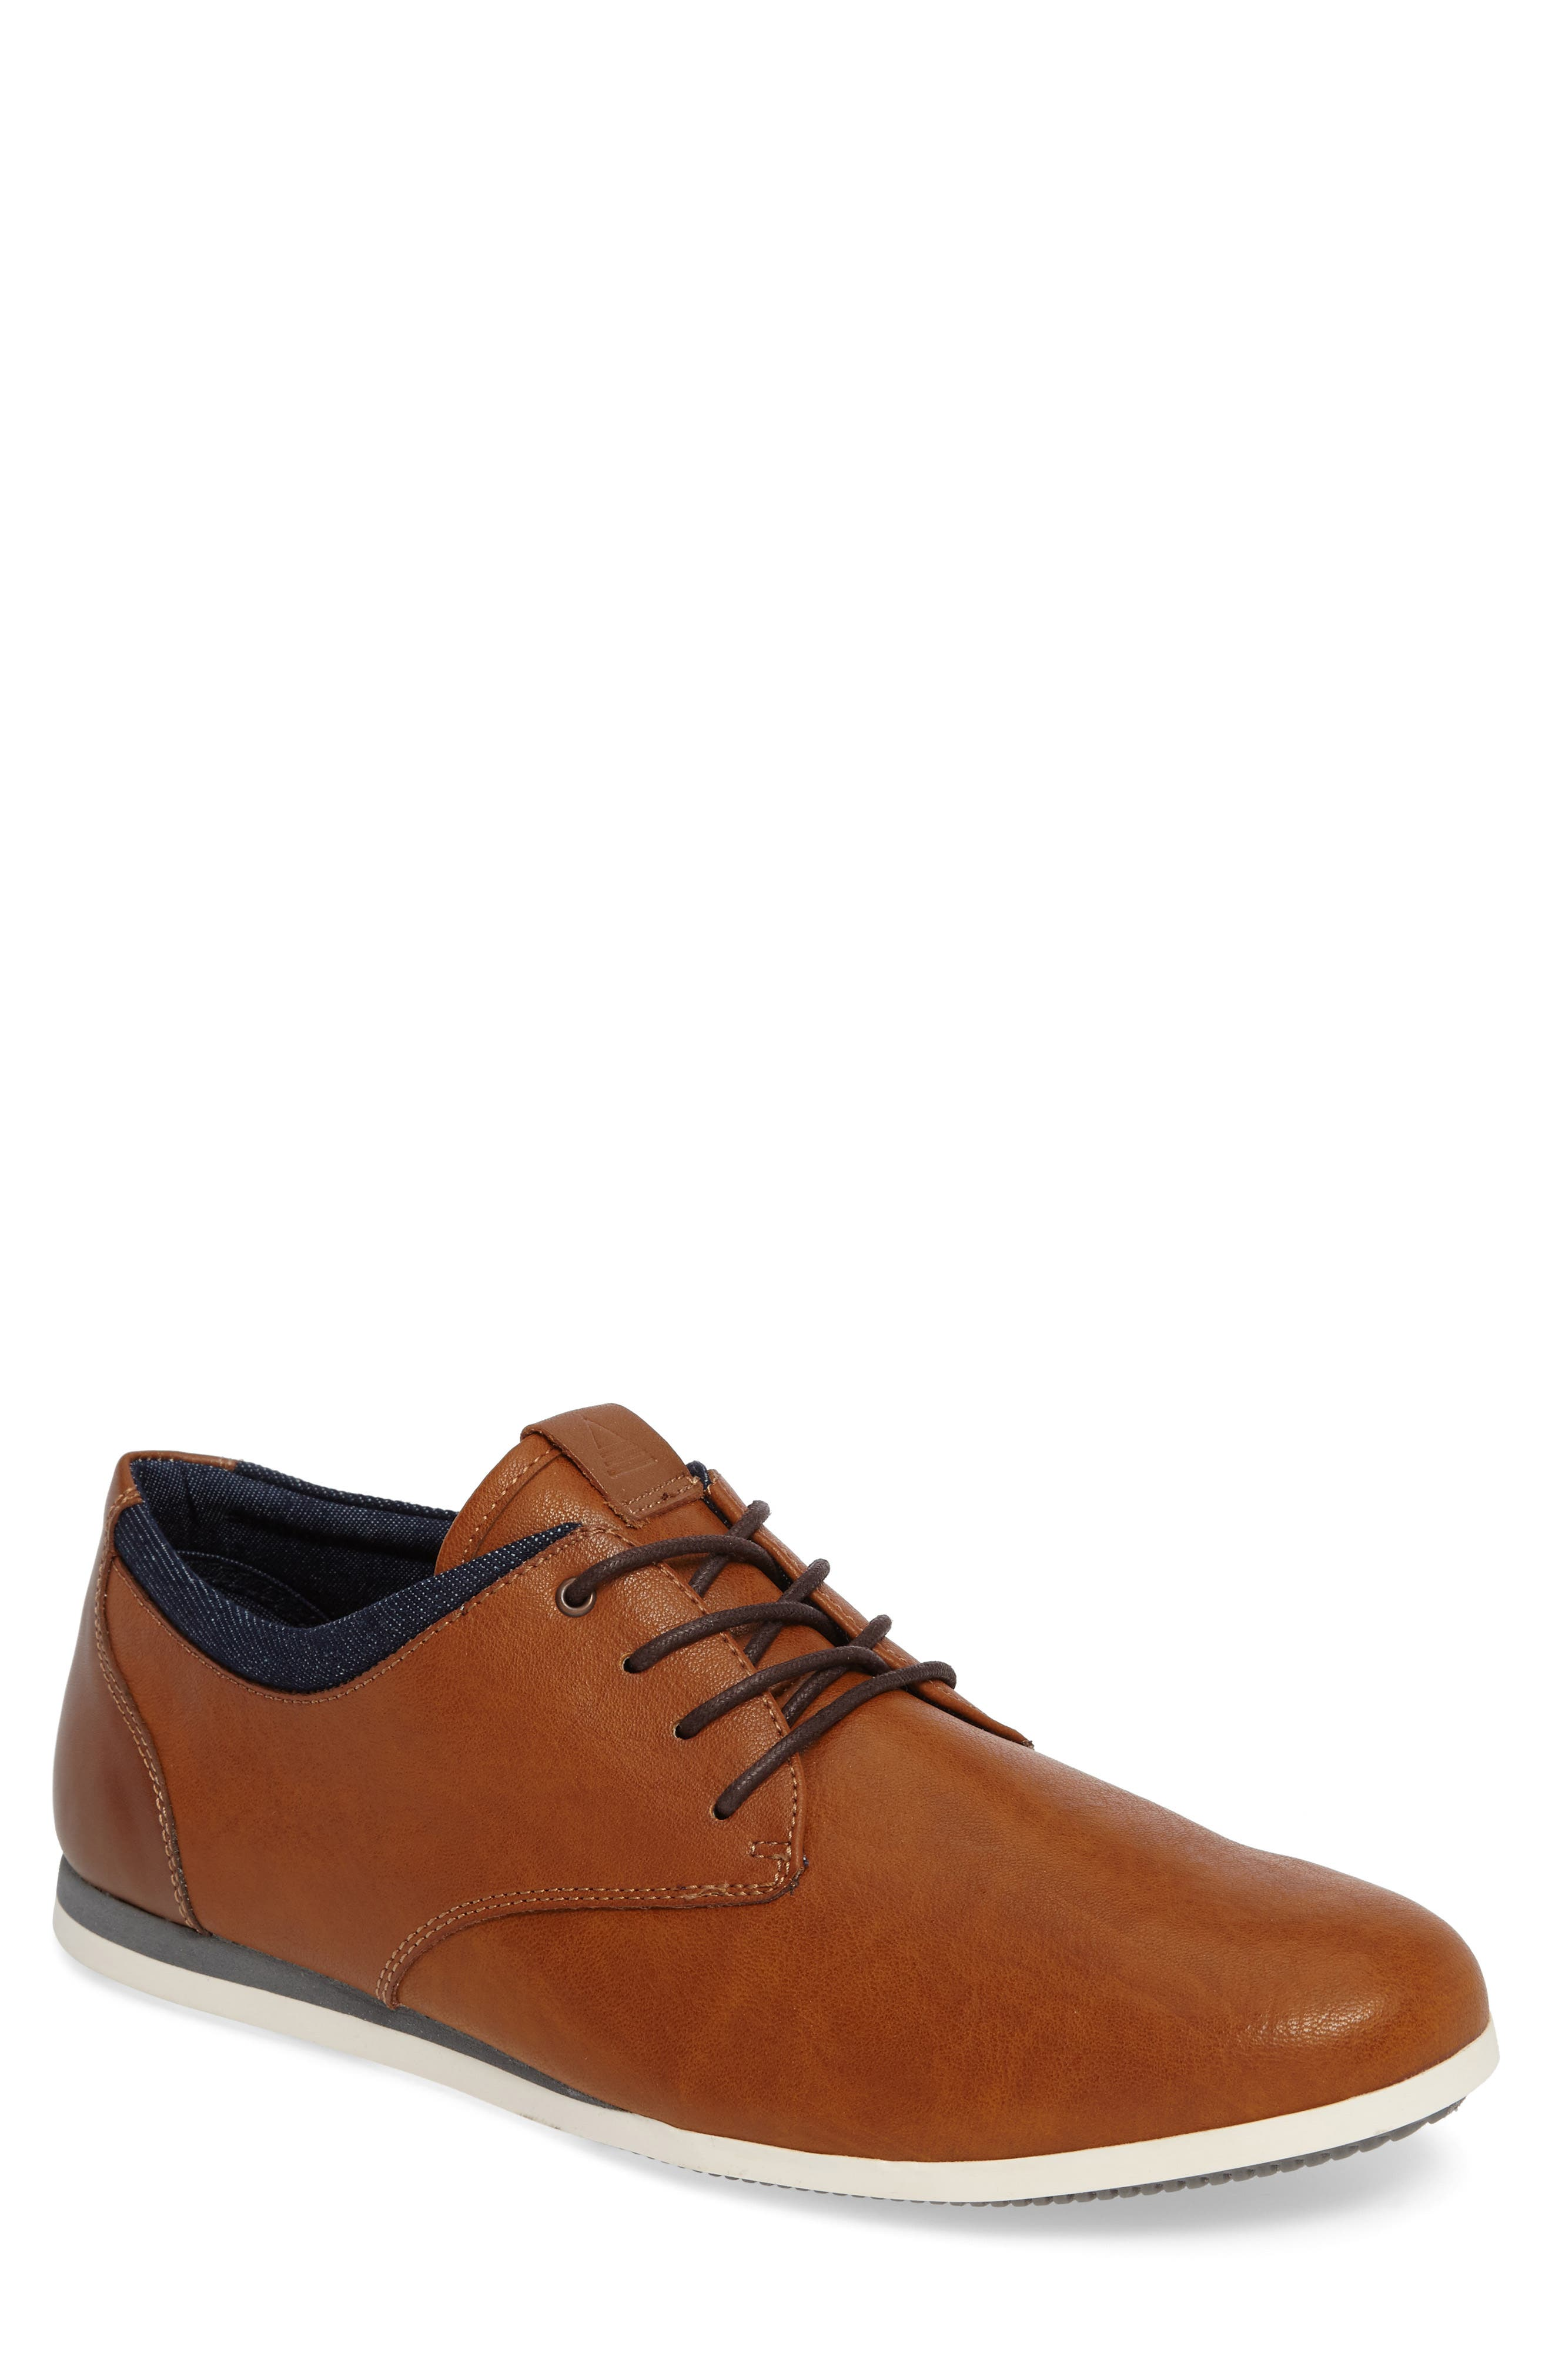 ALDO Aauwen Plain Toe Derby